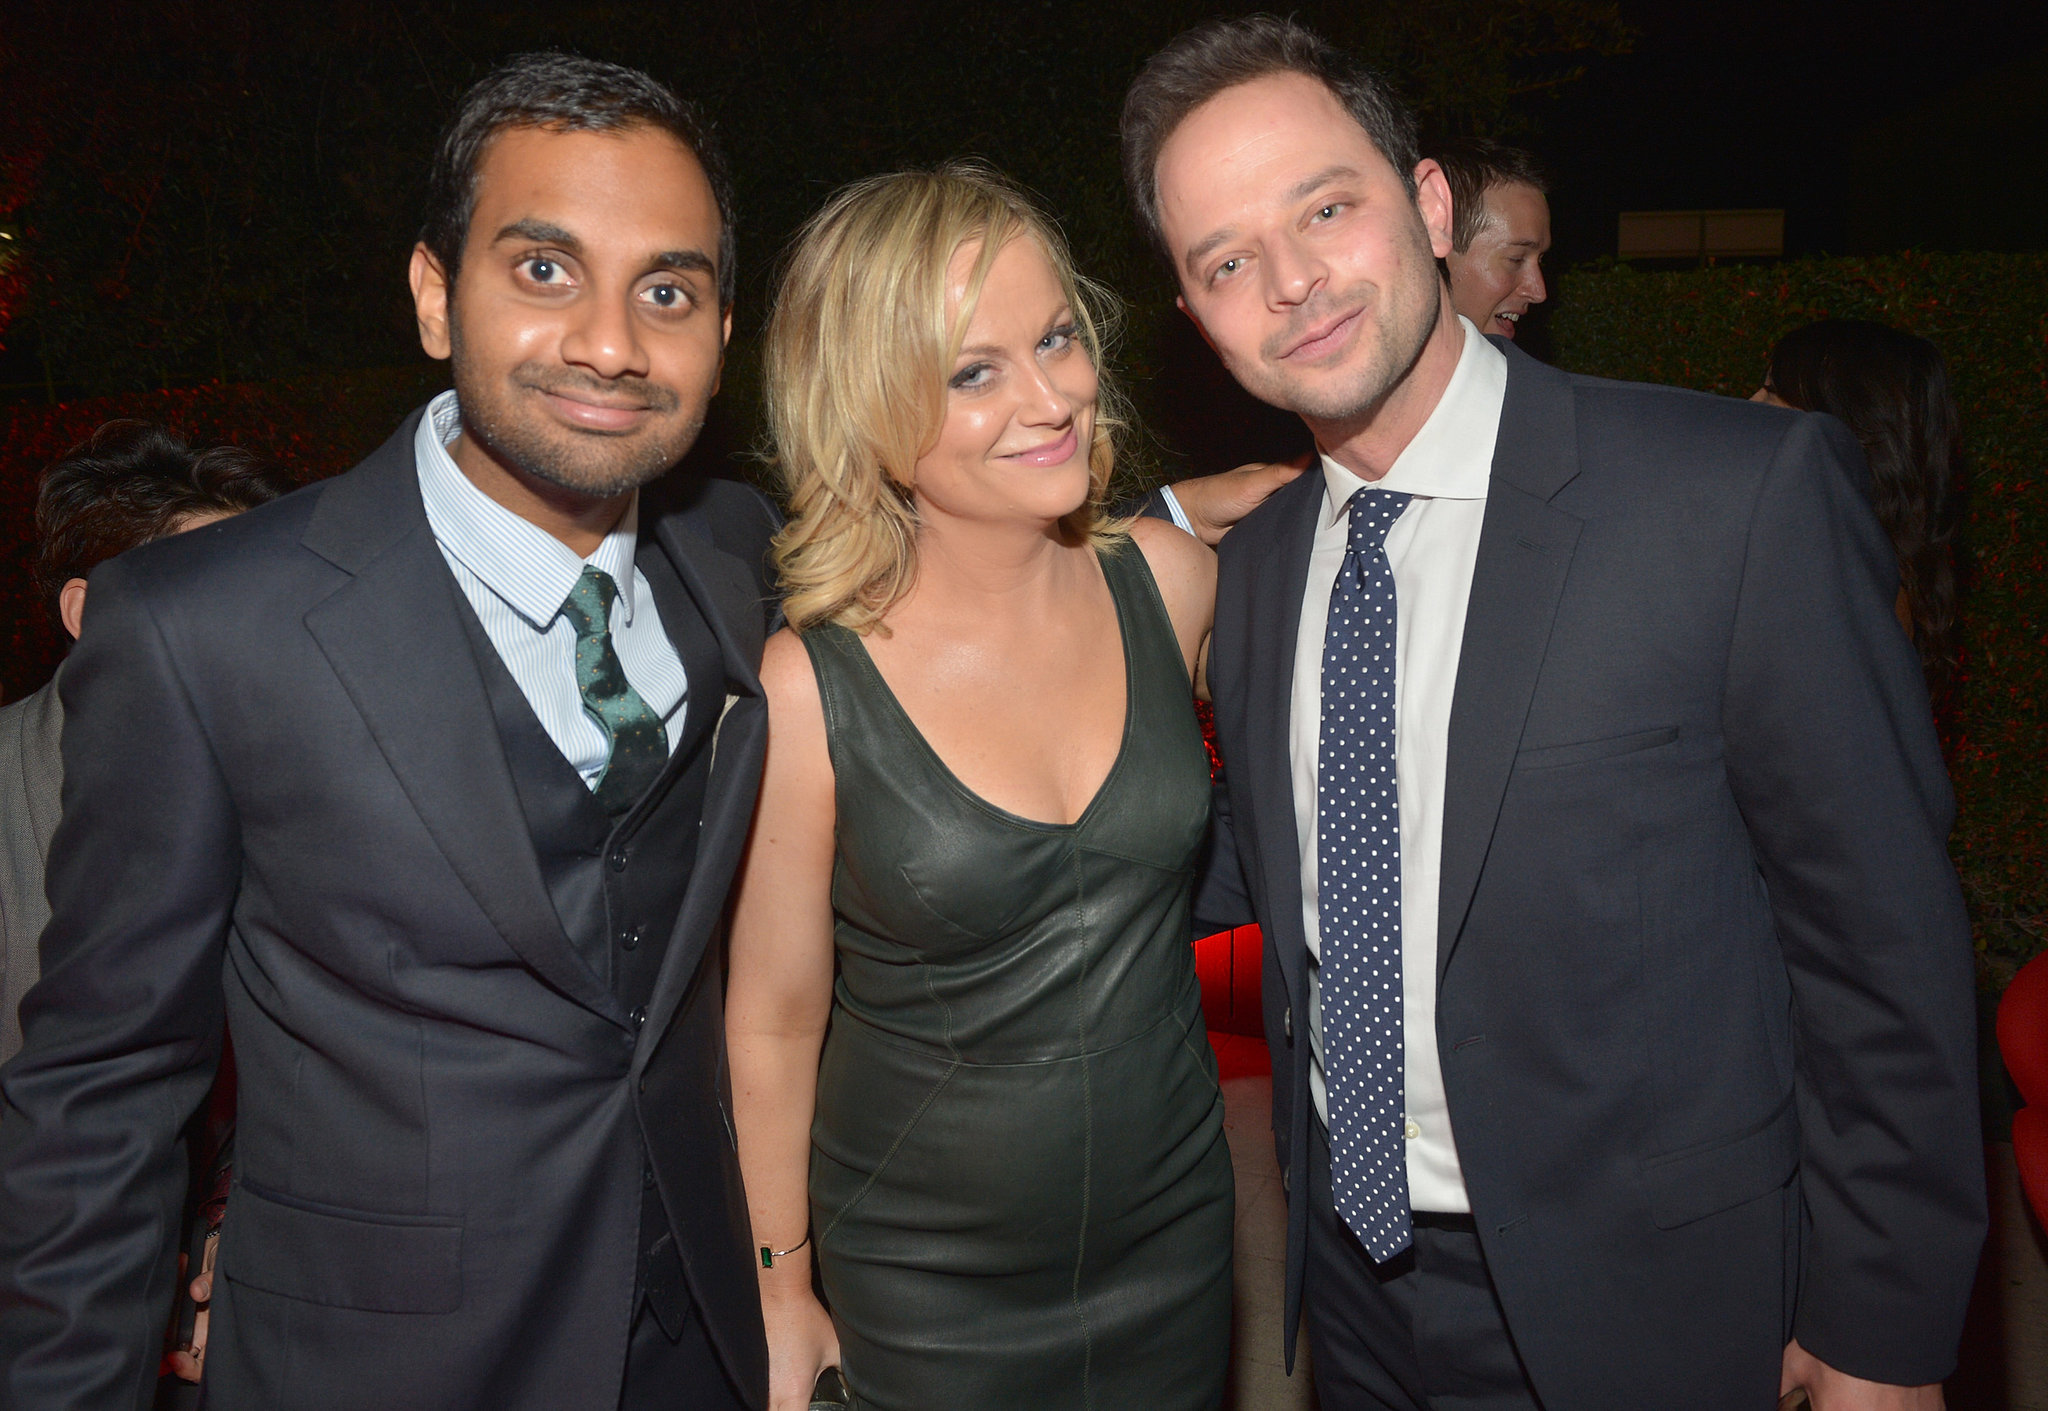 Amy Poehler spent time with her boyfriend, Nick Kroll, and Parks and Recreation costar Aziz Ansari.